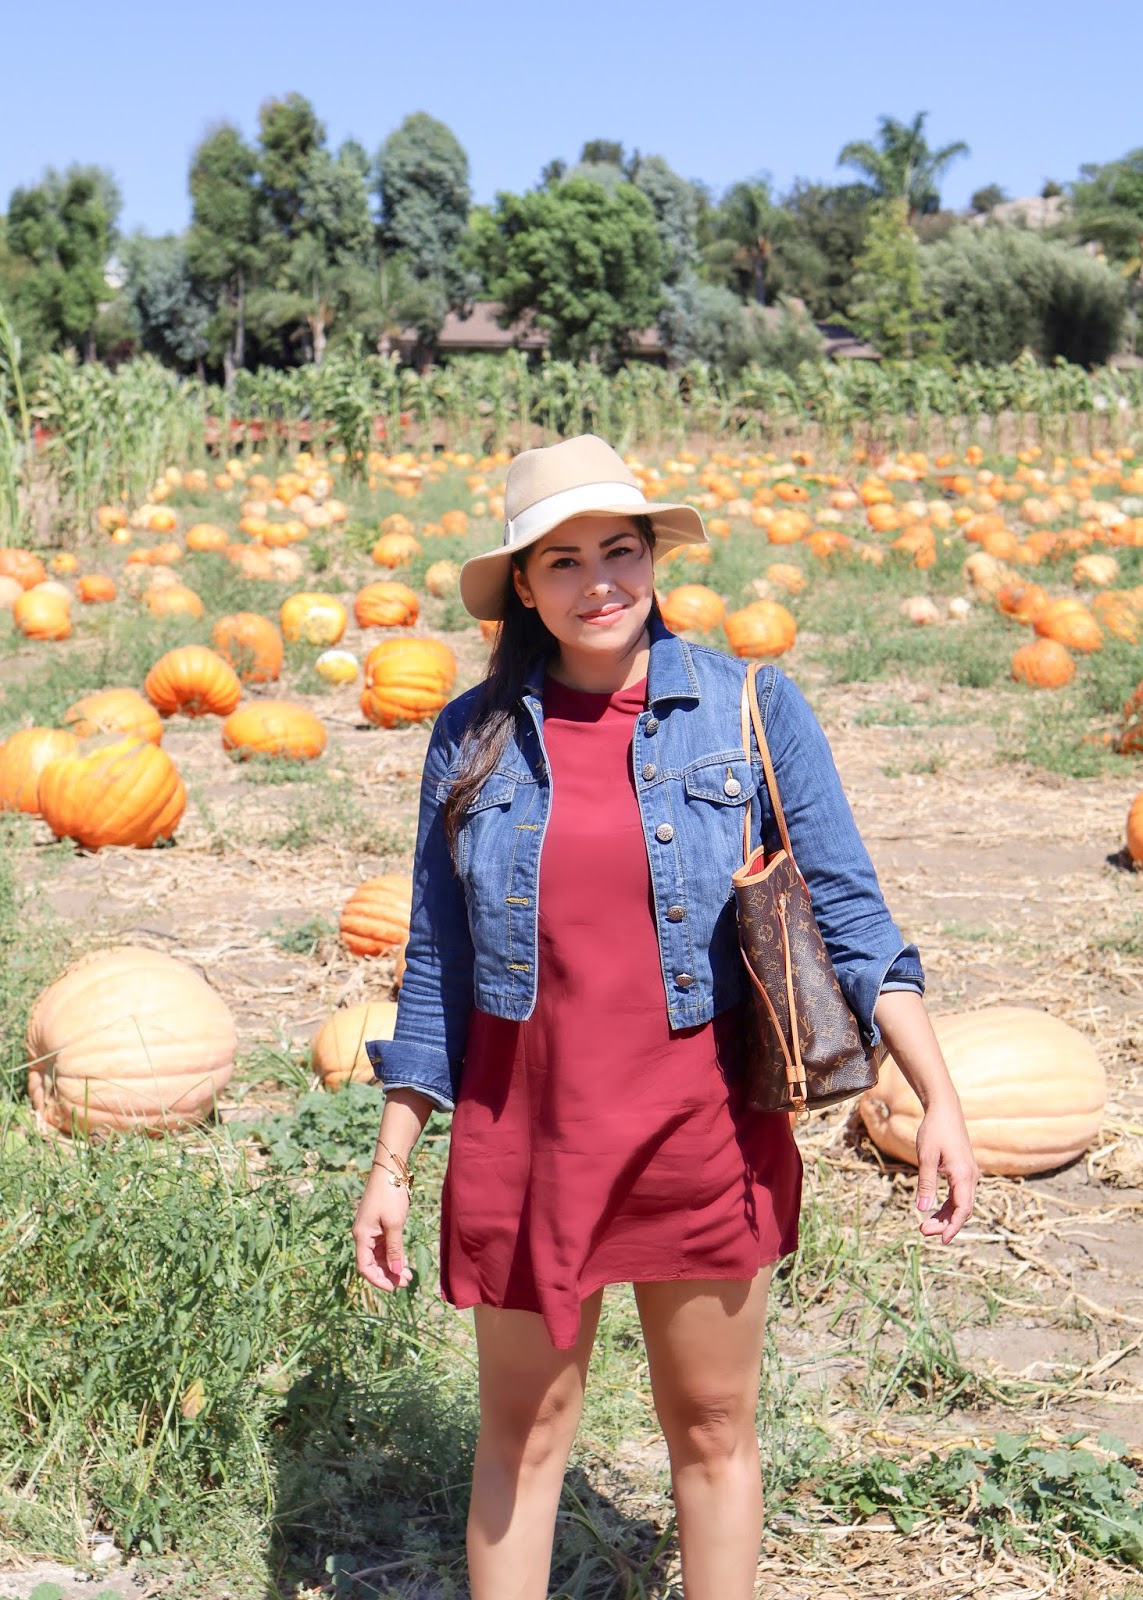 Fall fashion at the pumpkin patch, burgundy dress with jean jacket